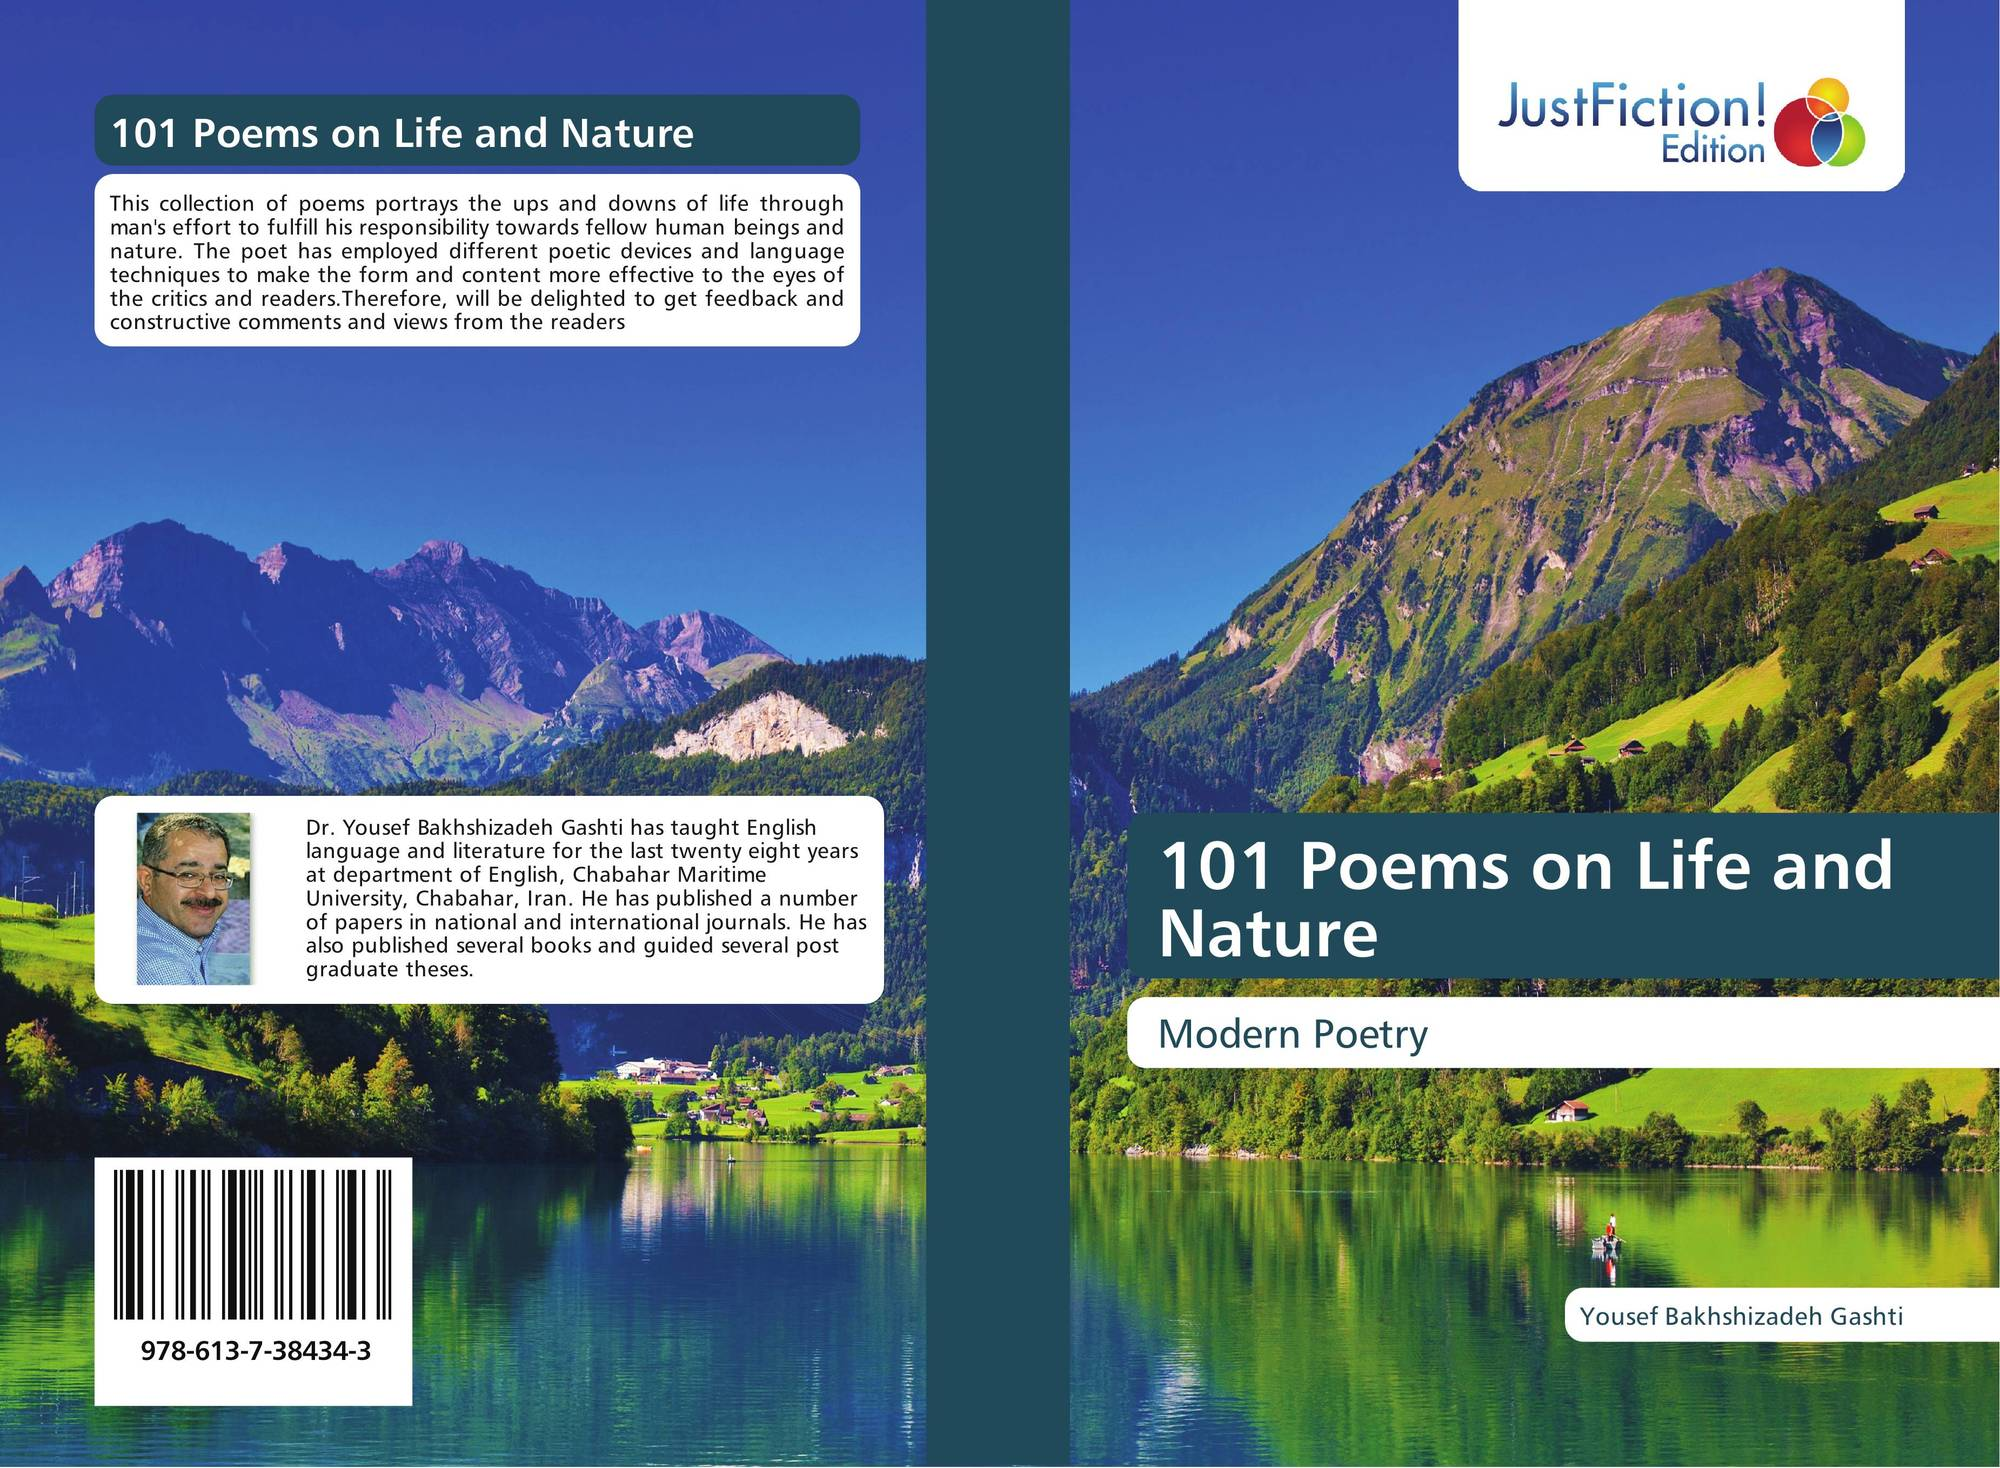 Published Poems About Life